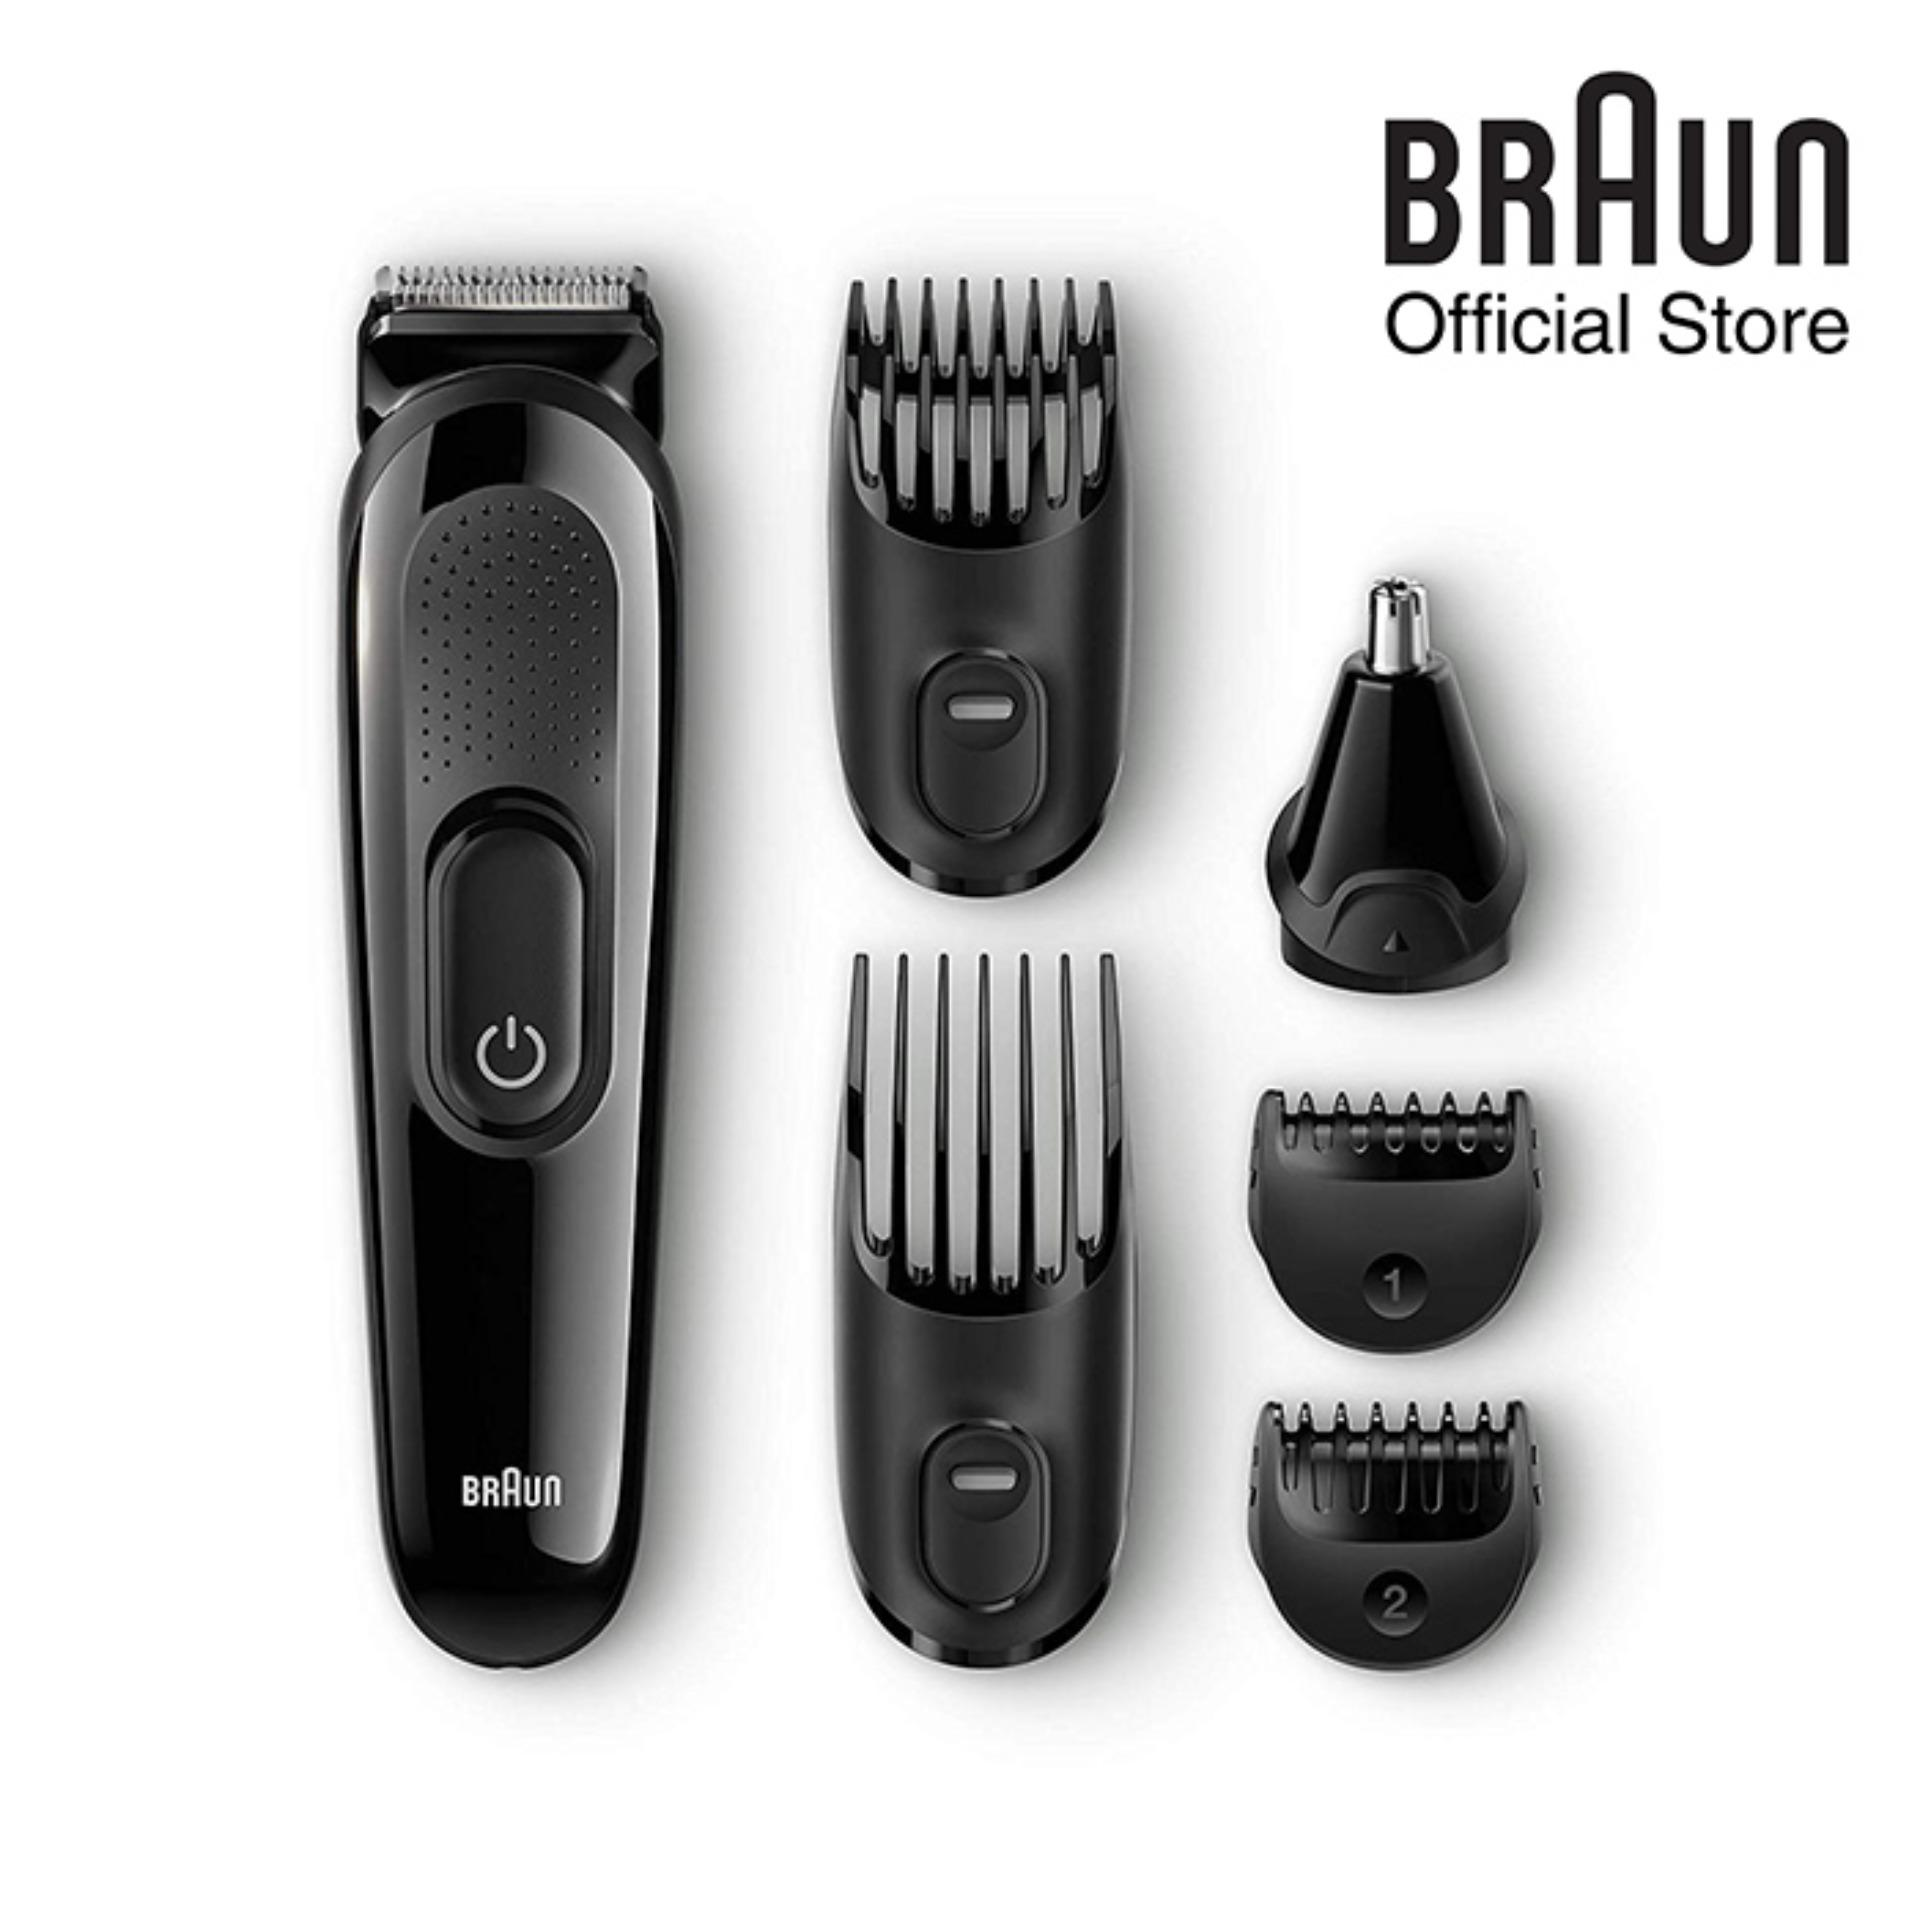 Braun Multi Grooming Kit Mgk 3020 – 6-In-1 Beard / Hair Trimmer By Braun Official Store.